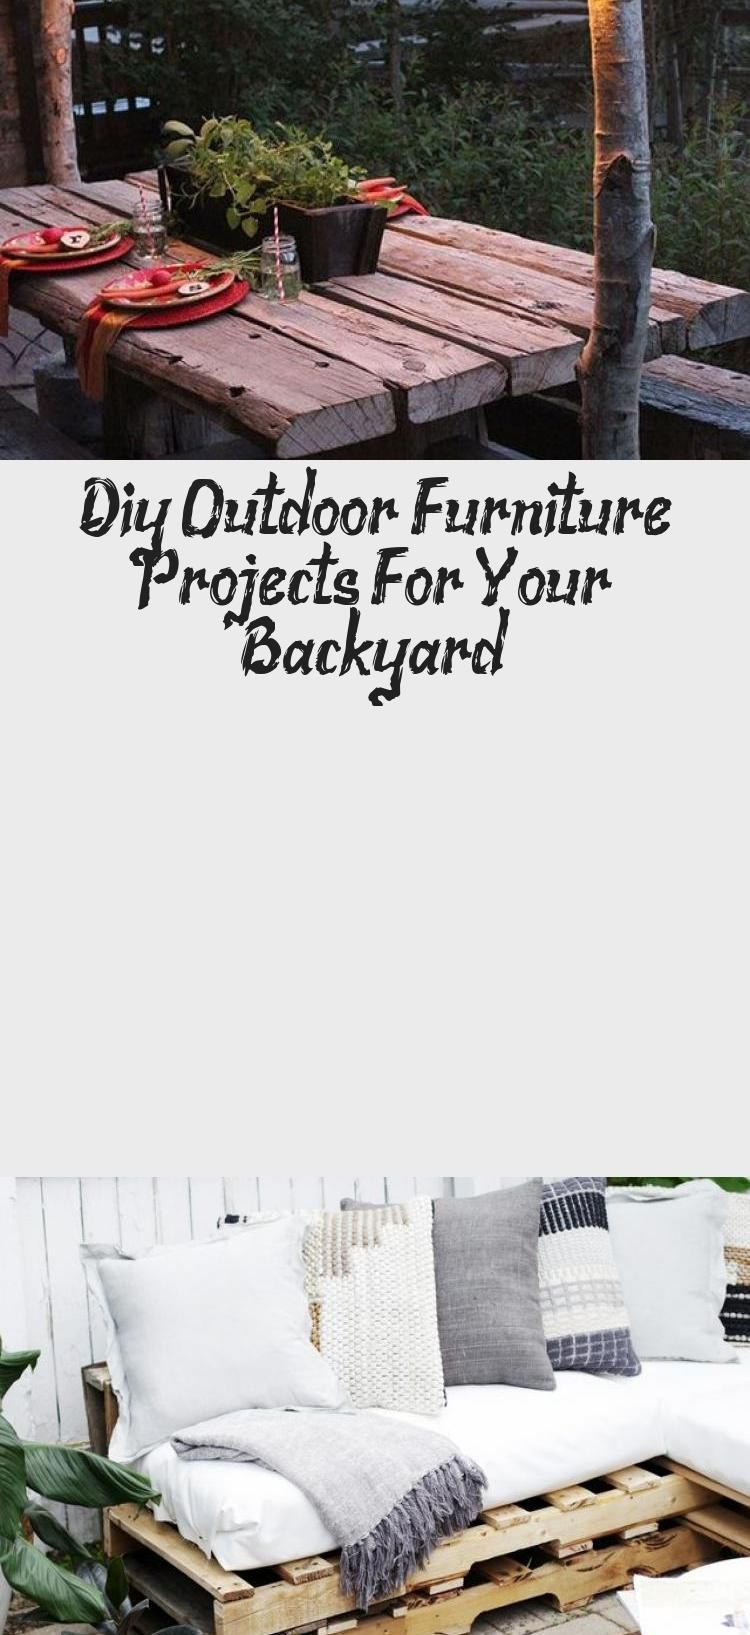 Diy Outdoor Furniture Projects For Your Backyard - DIY & Crafts - Do IT Yourself...#backyard #crafts #diy #furniture #outdoor #projects #balconybar